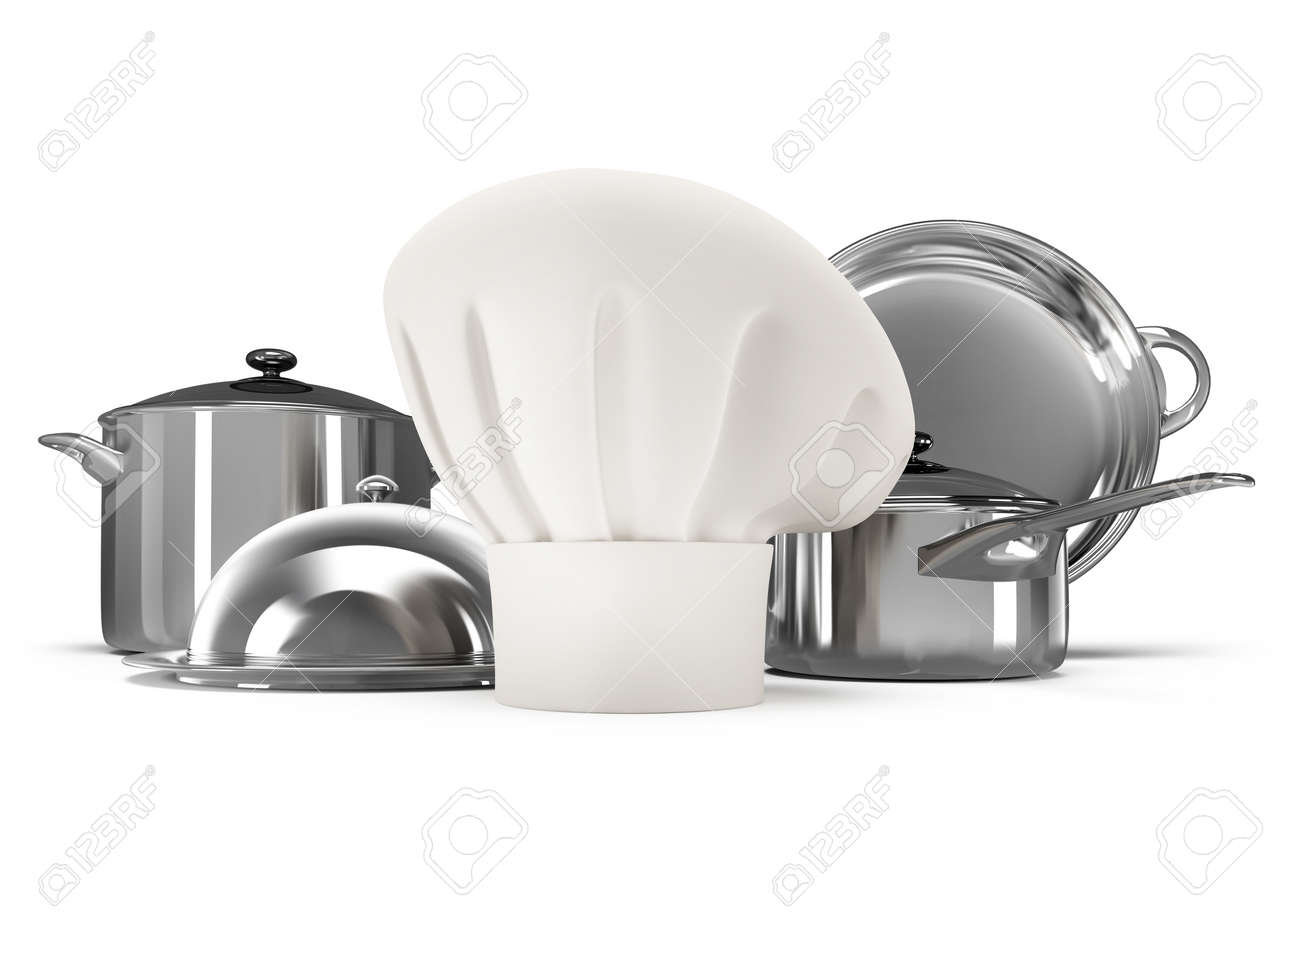 Stainless Steel Kitchenware With Chef Hat Isolated On White ...